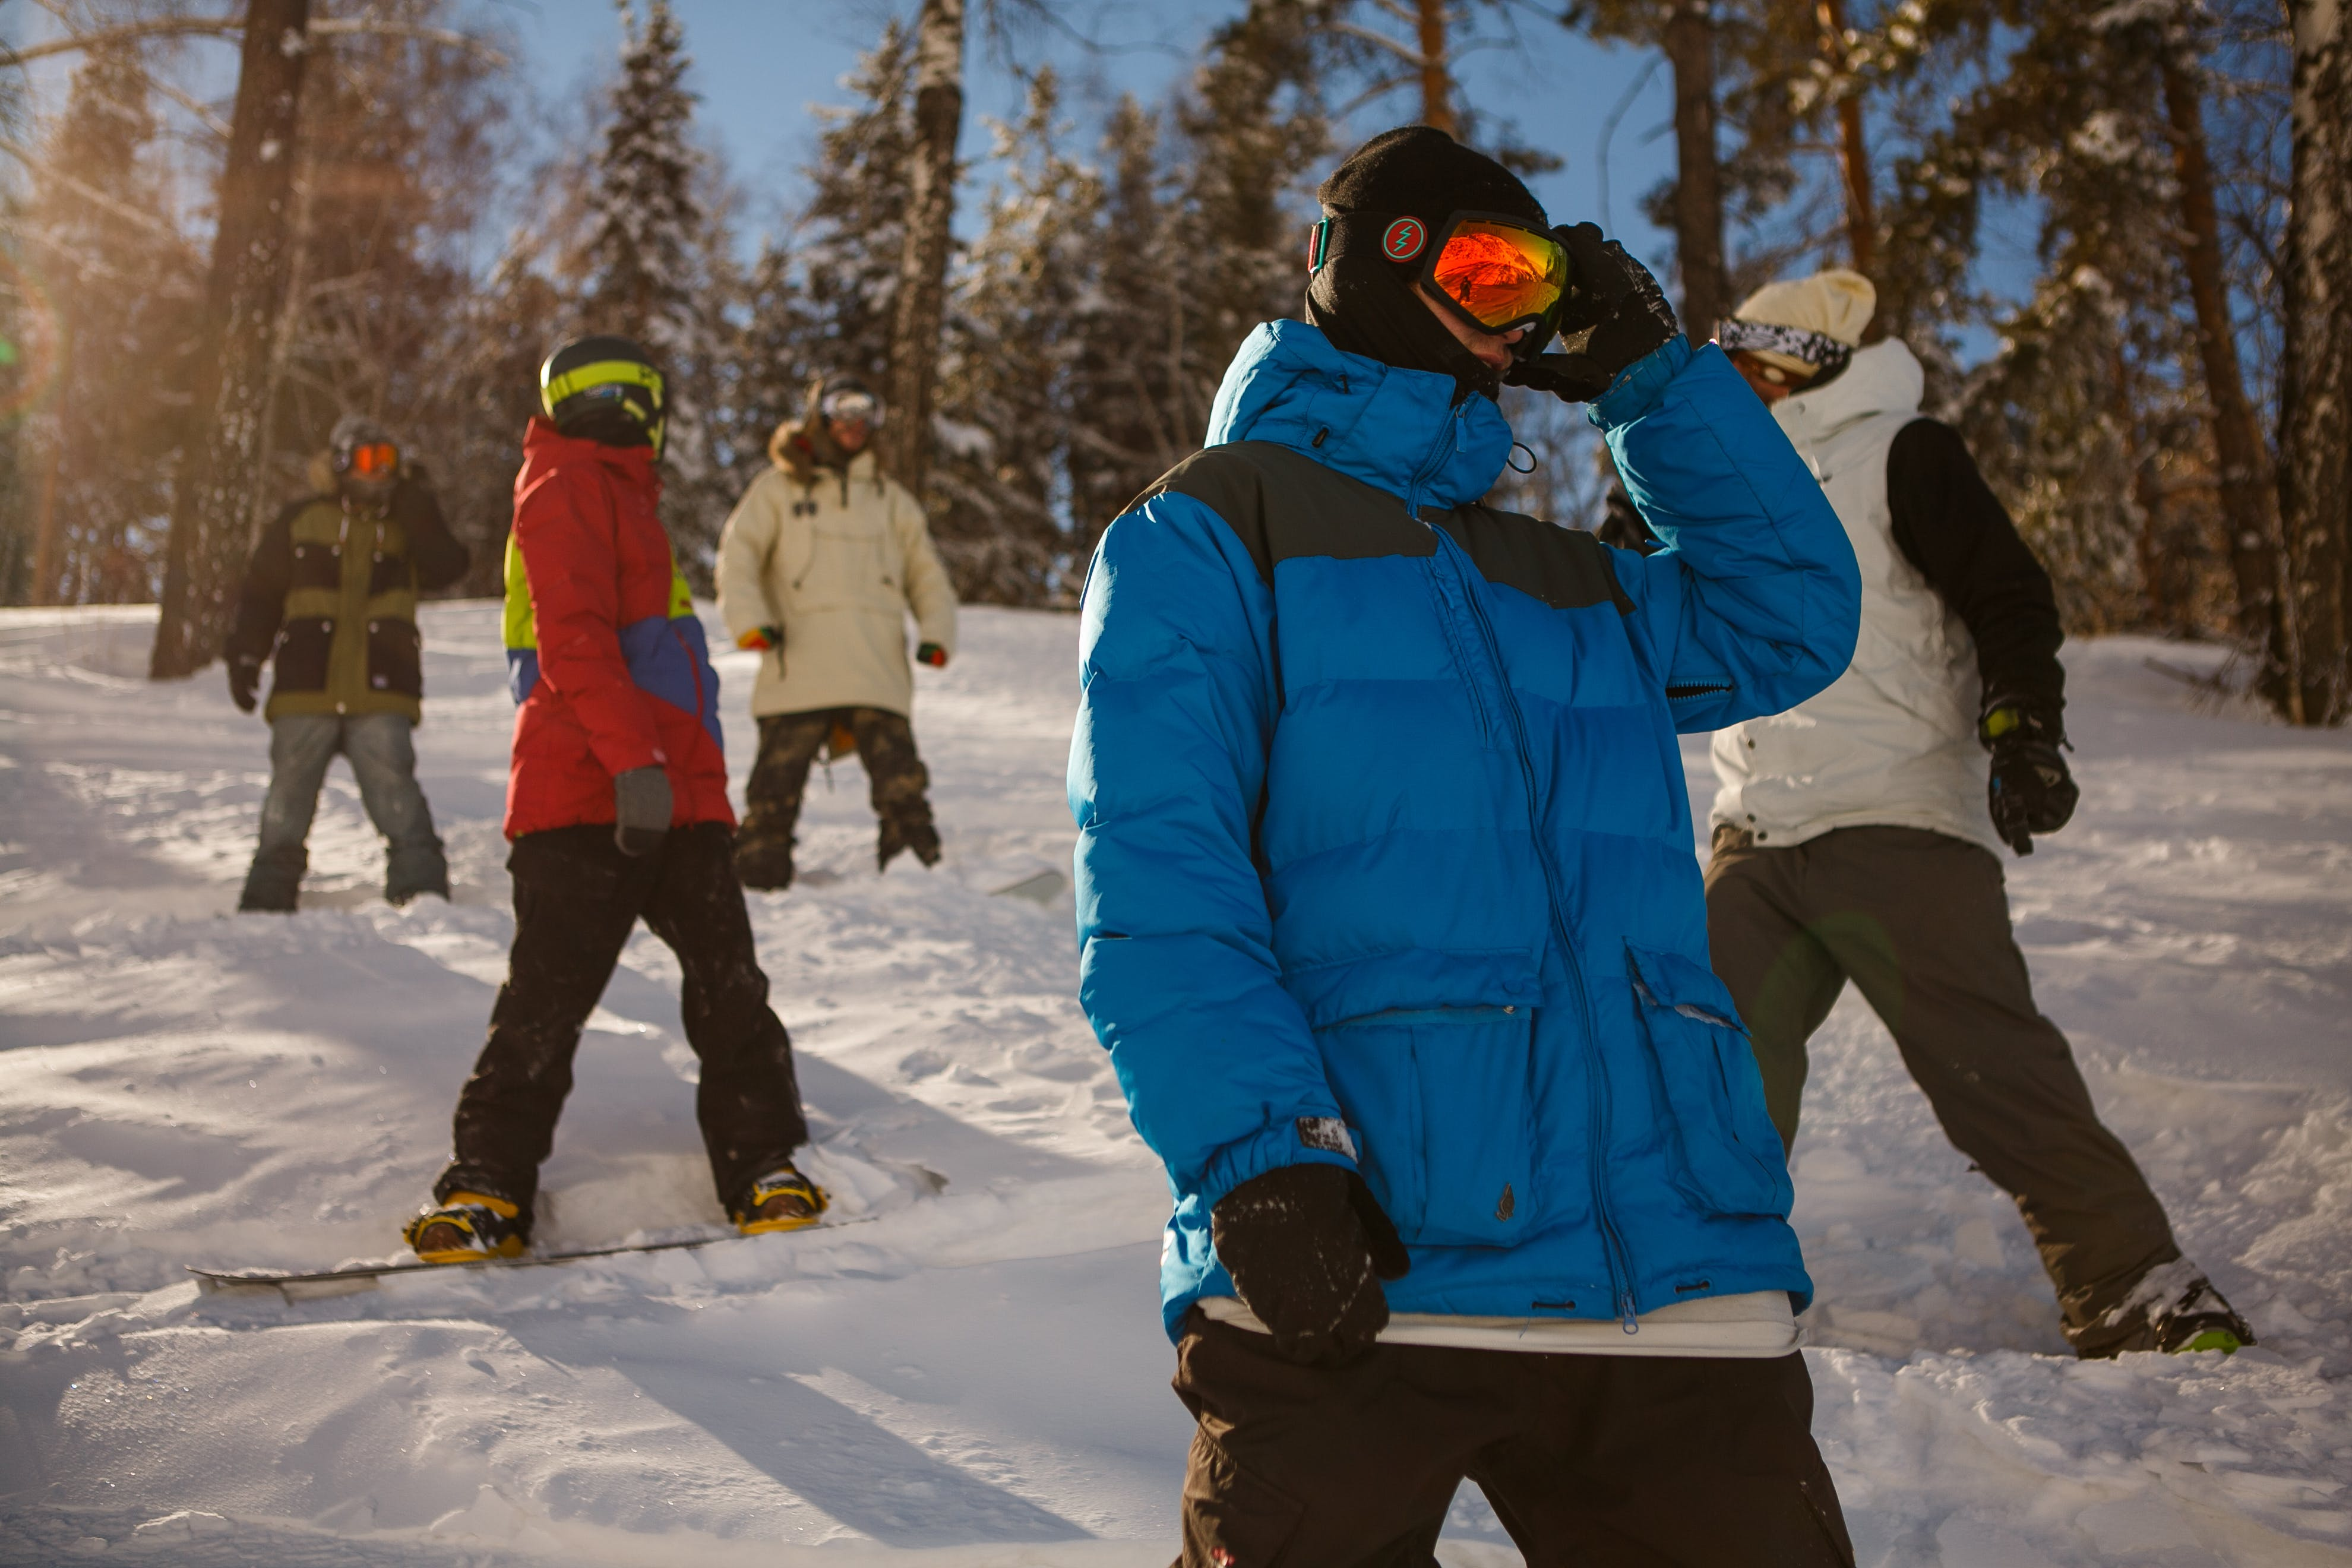 Group of People in Bubble Jackets Skiing in Mountain